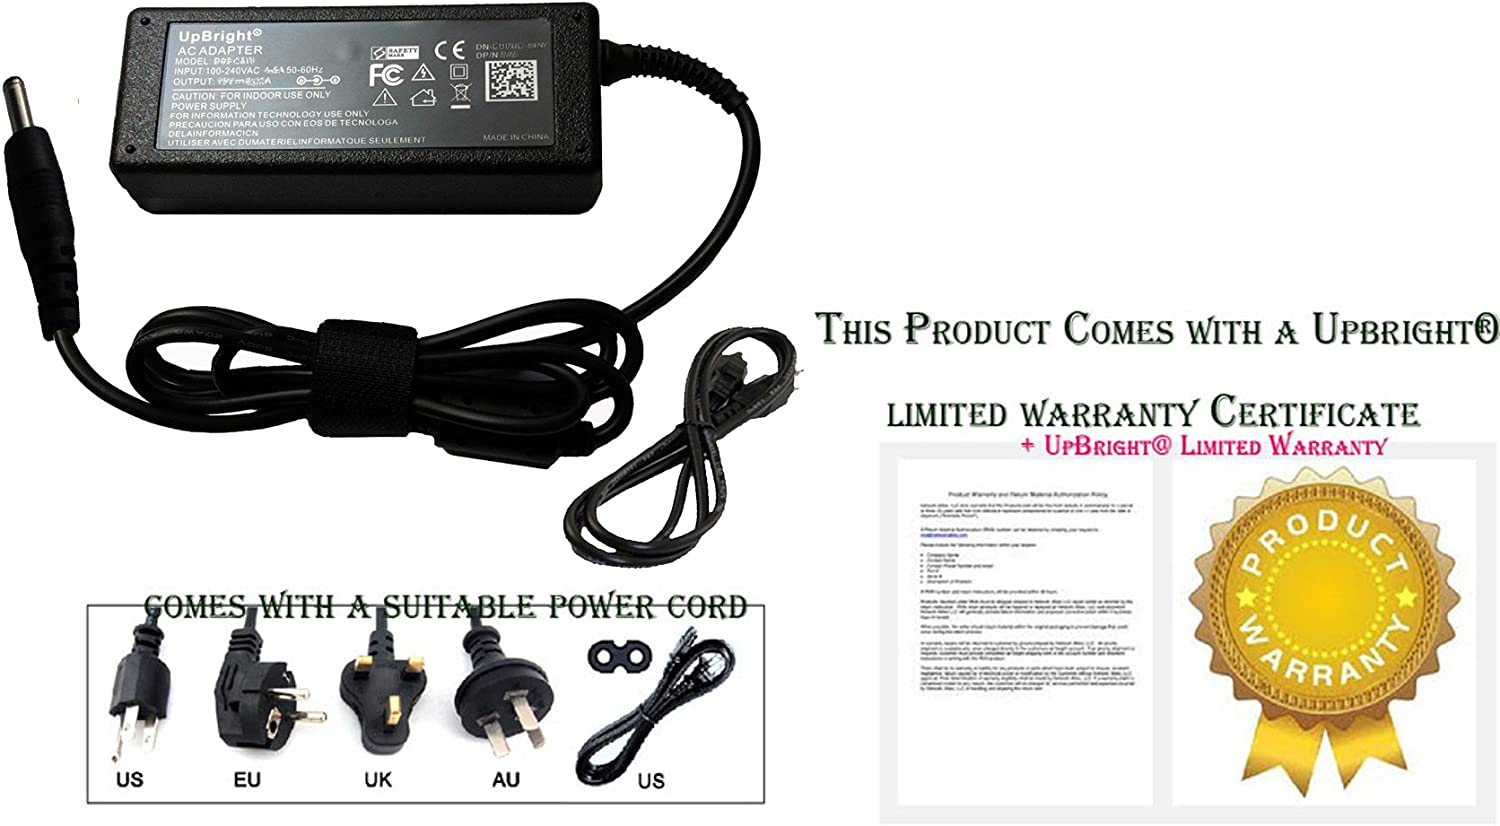 ASUS 19V 2.37A 45W AC Adapter for Asus Zenbook UX21E and UX31E Series Notebooks (ADP-45AW)